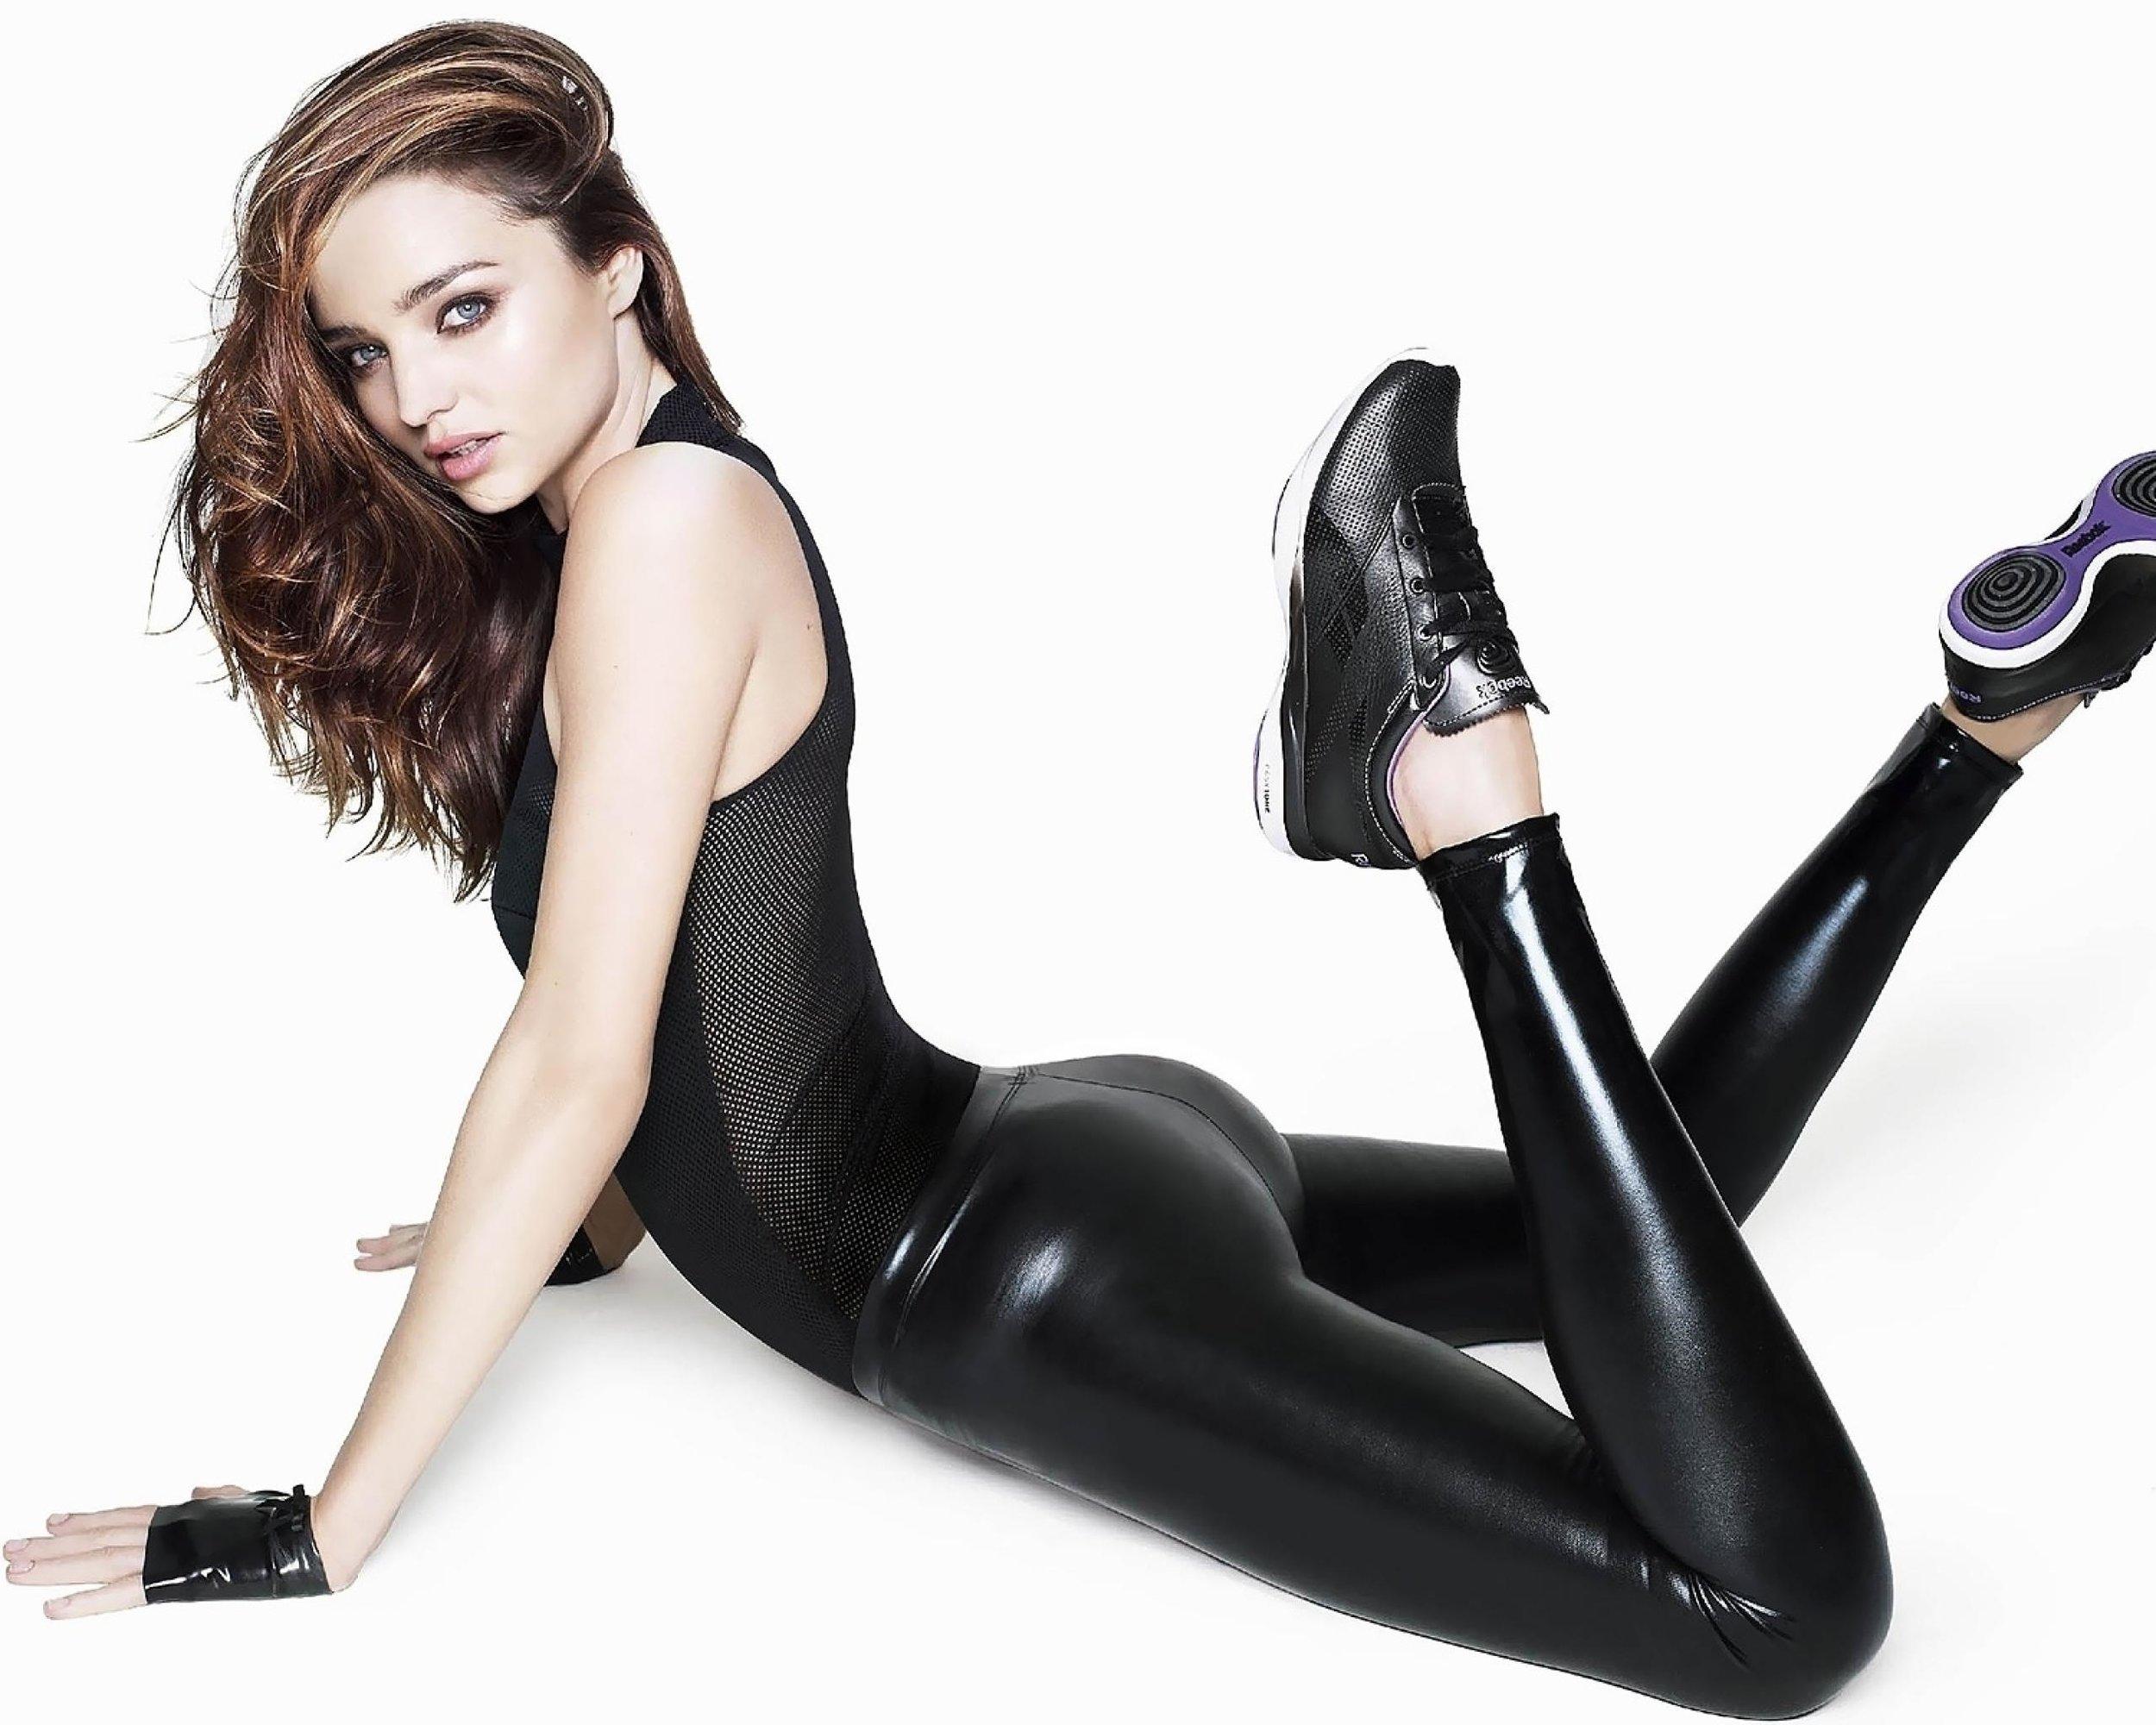 Wallpapersxl Miranda Kerr Reebok Up Net 360702 2560x2048-1.jpg